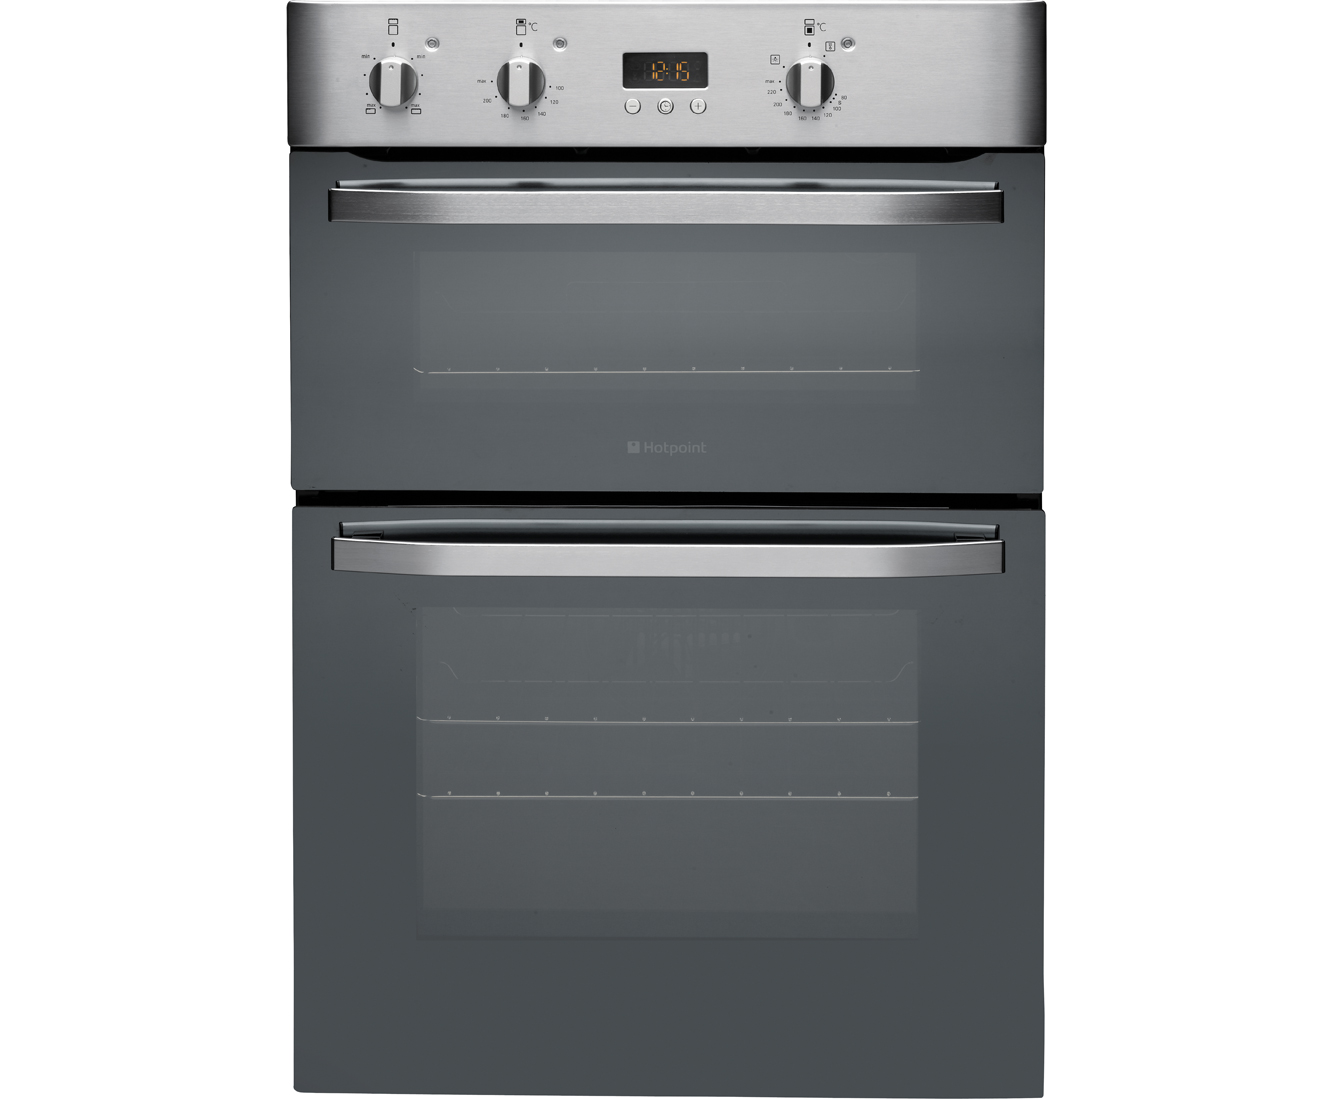 Pictures of Hotpoint Double Oven